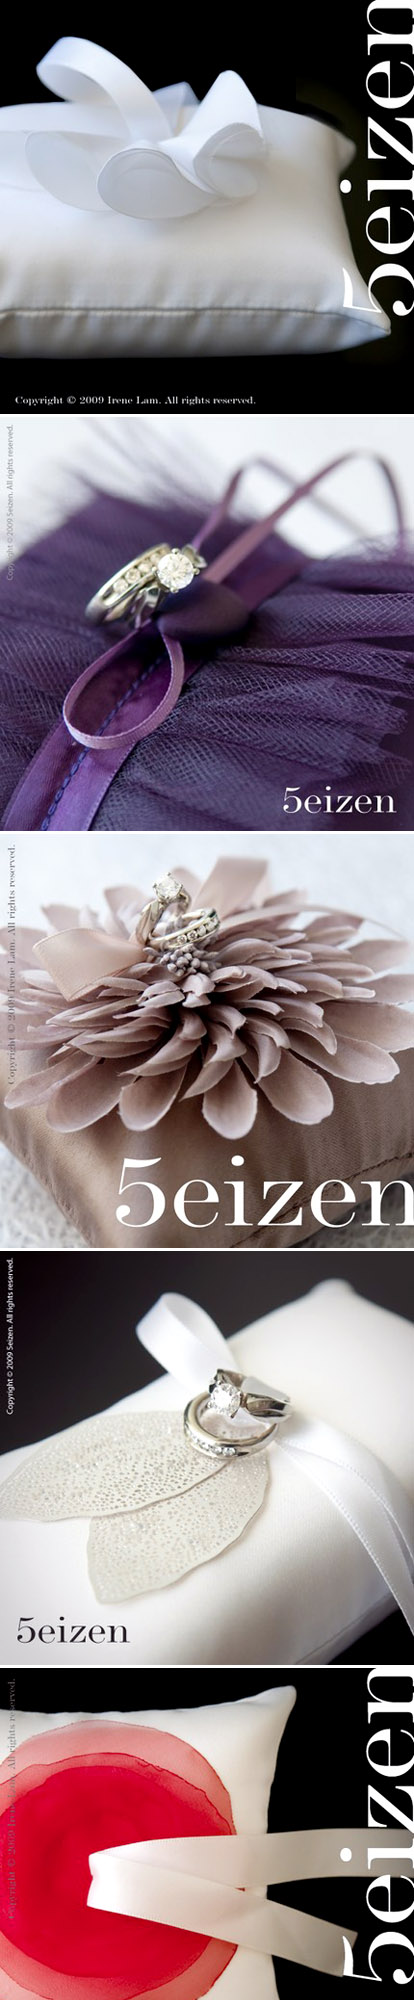 Clean, modern, chic, stylish floral wedding ring pillows from 5eizen on Etsy.com